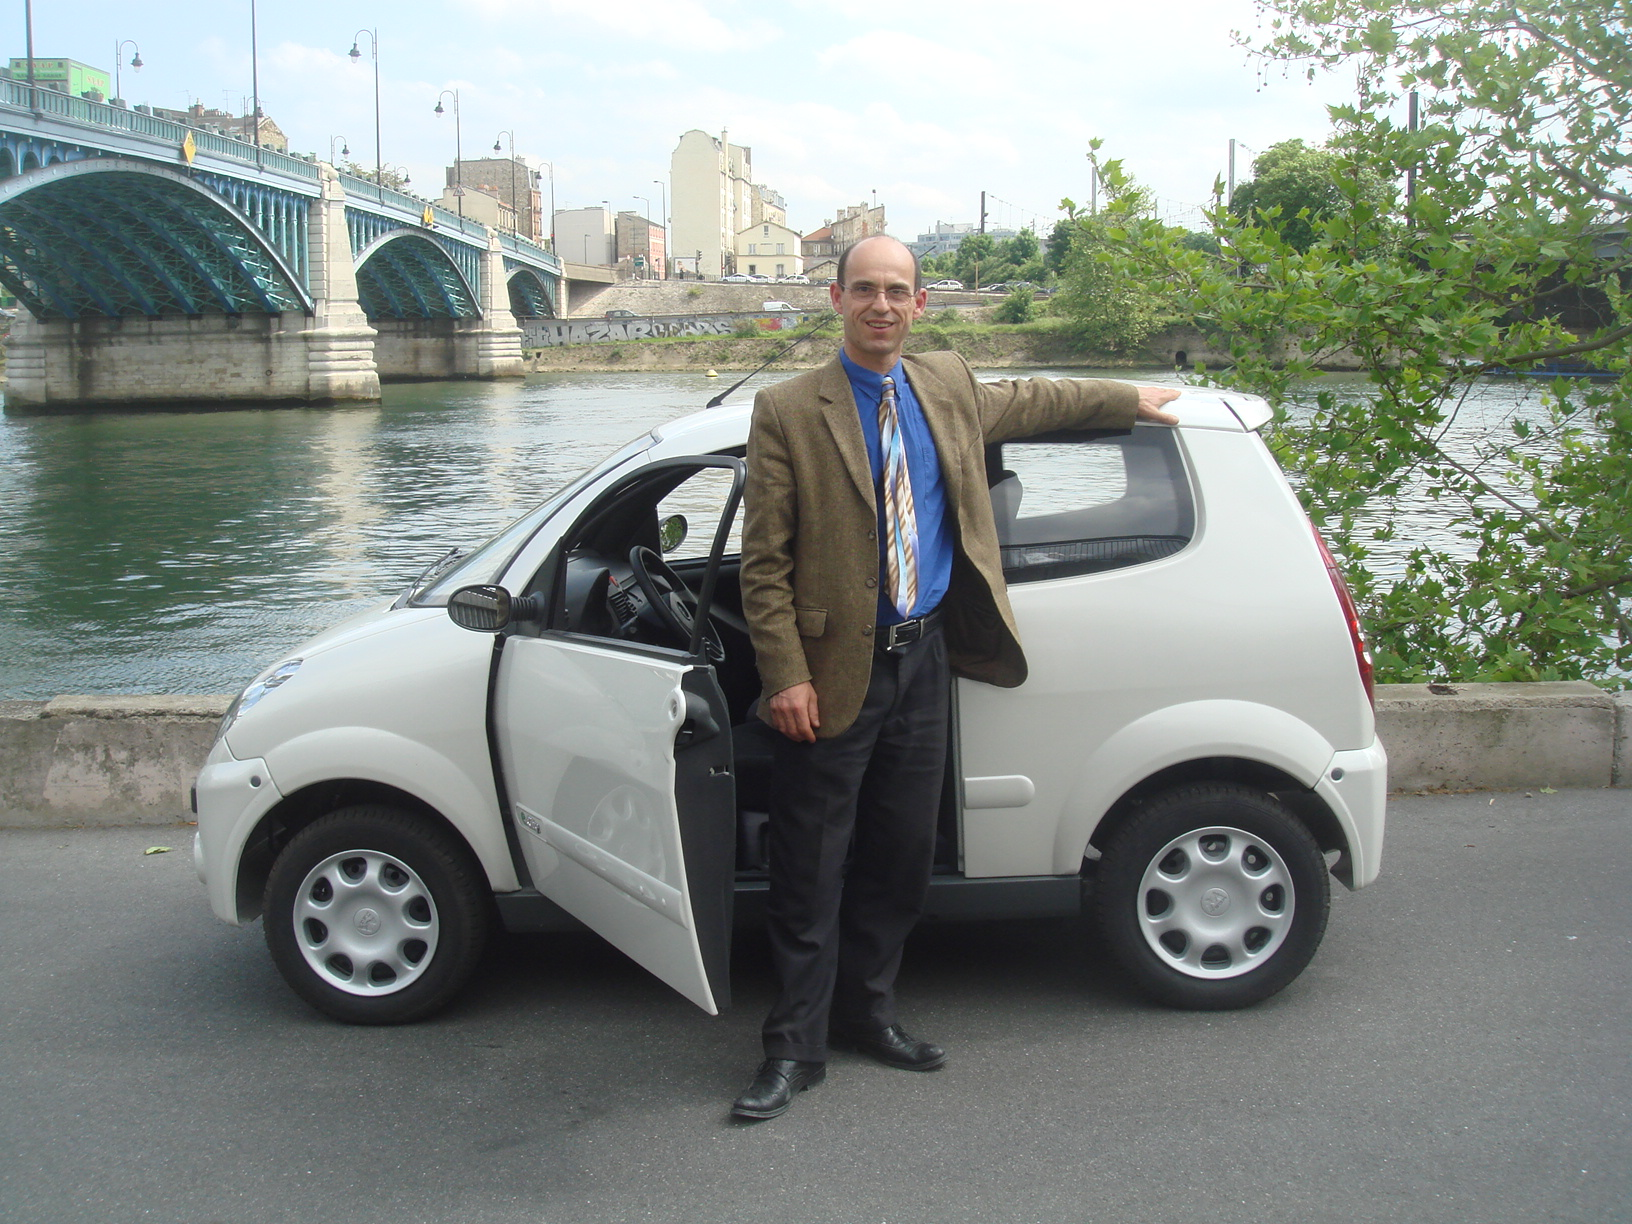 The first electric car to be